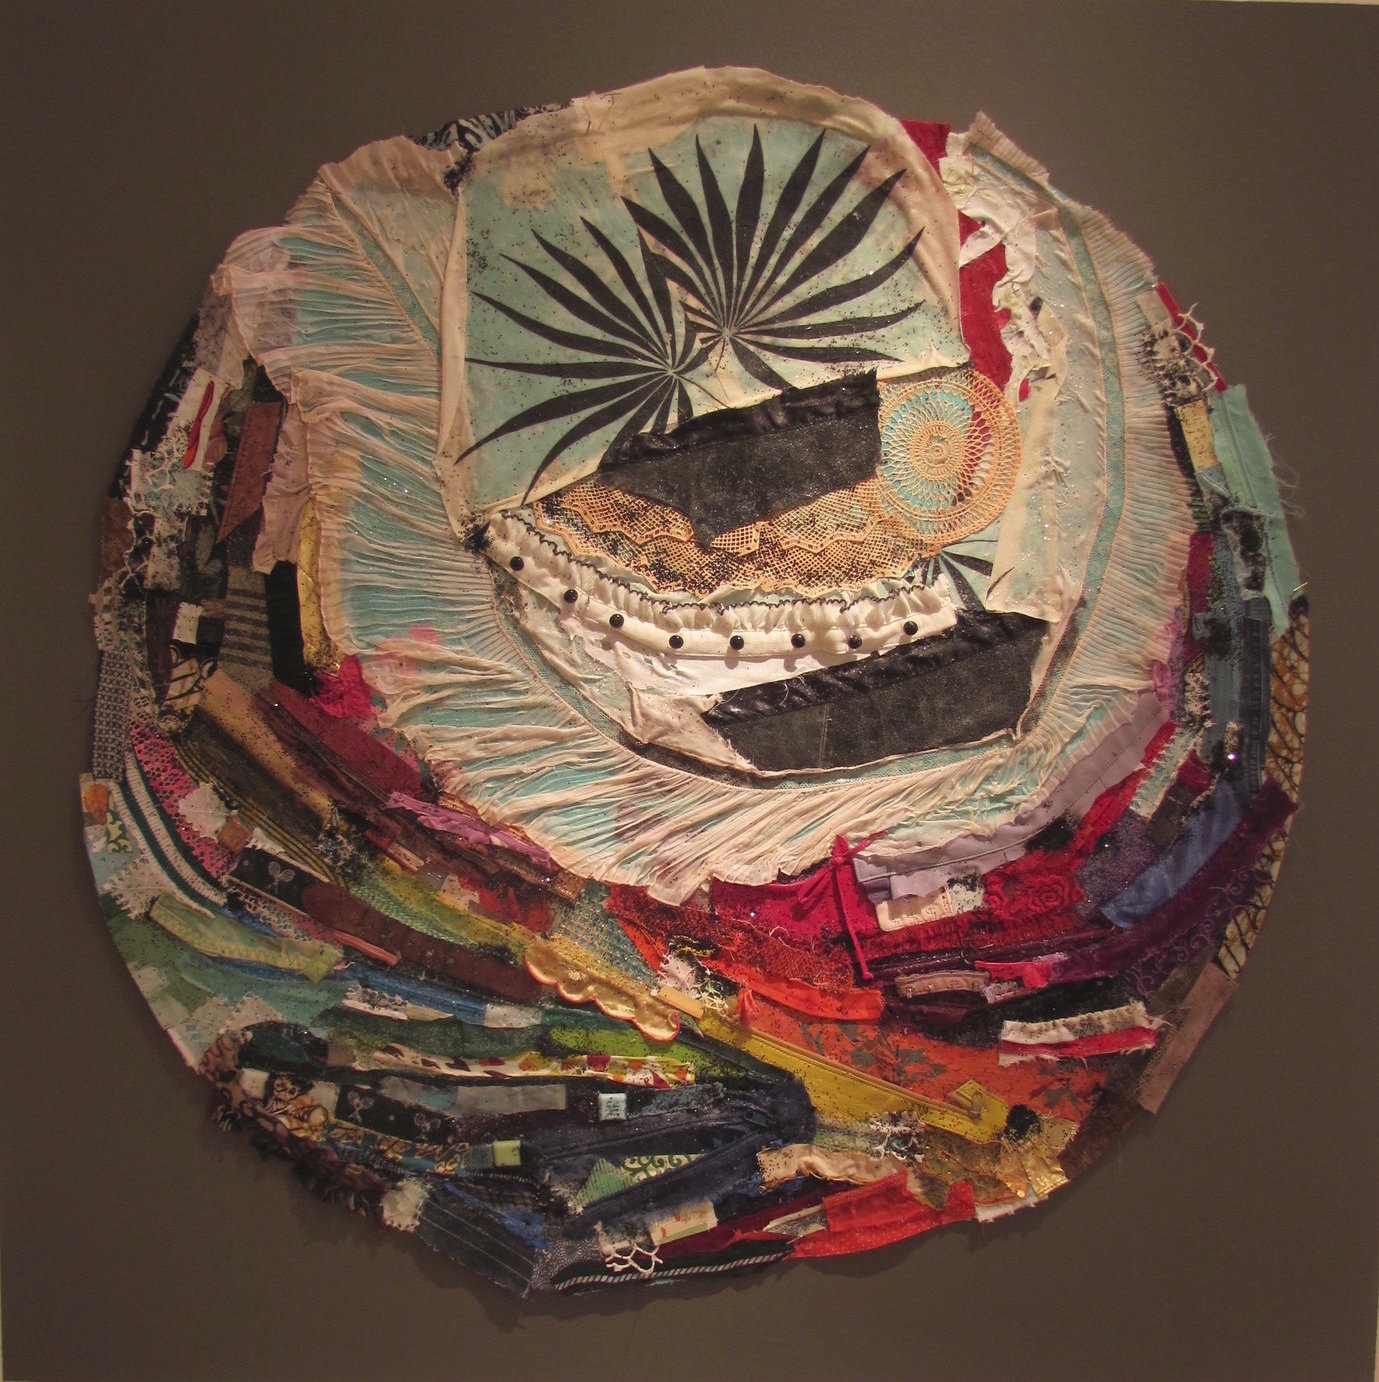 All That I Am, Series, Mixed Media on Canvas, 36 Diameter, 2012, Sold